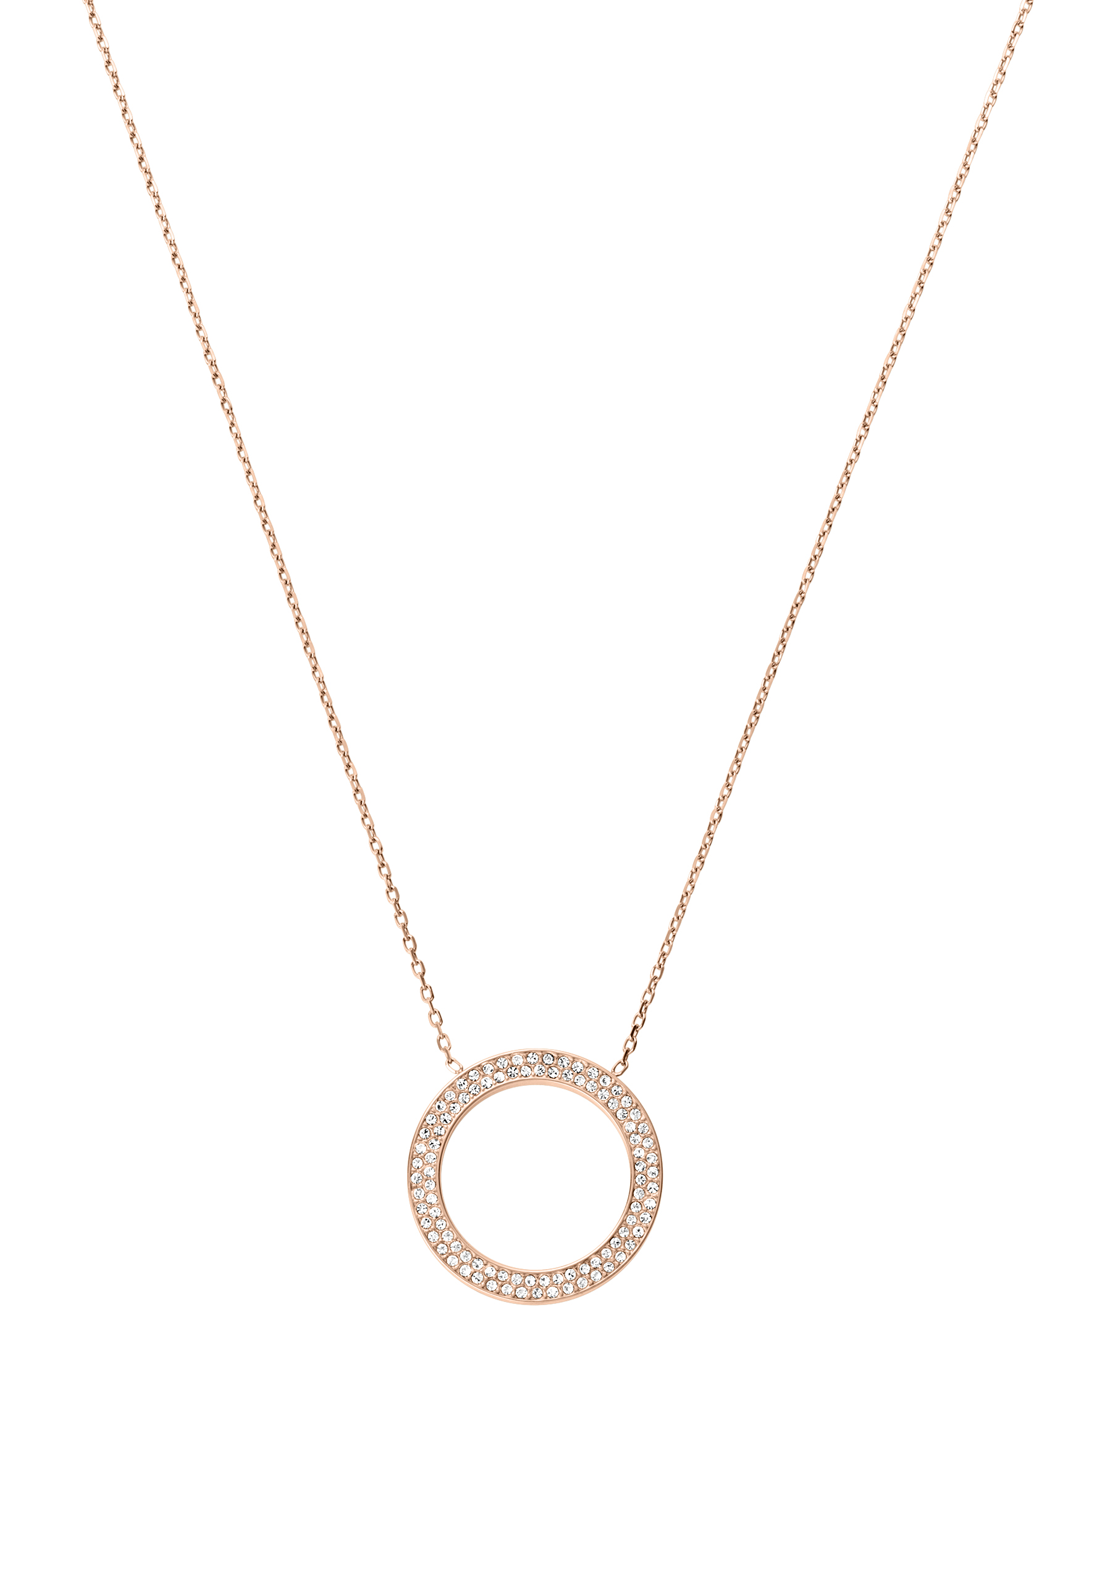 Michael Kors Womens Pave Circle Necklace, Rose Gold